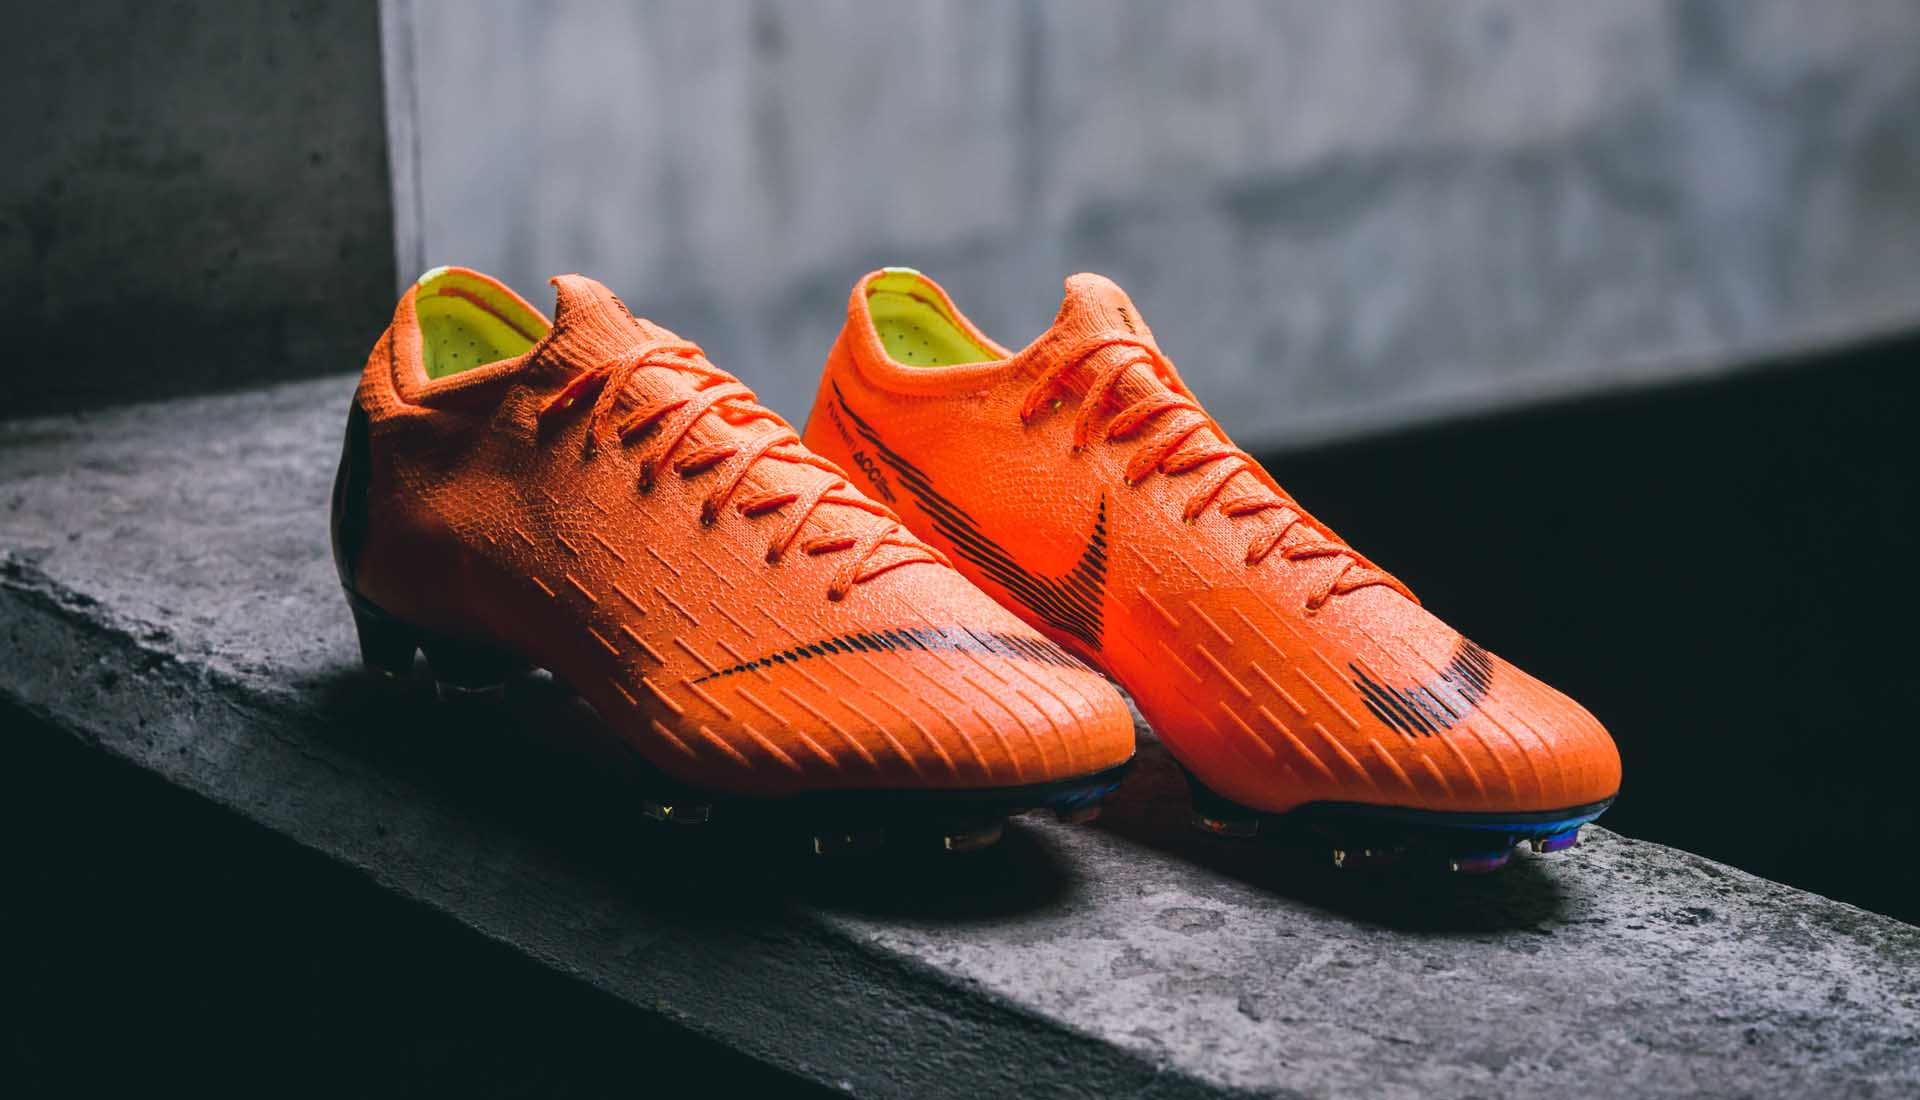 e7d7992390e Nike Launch the Mercurial Vapor 360 - SoccerBible.